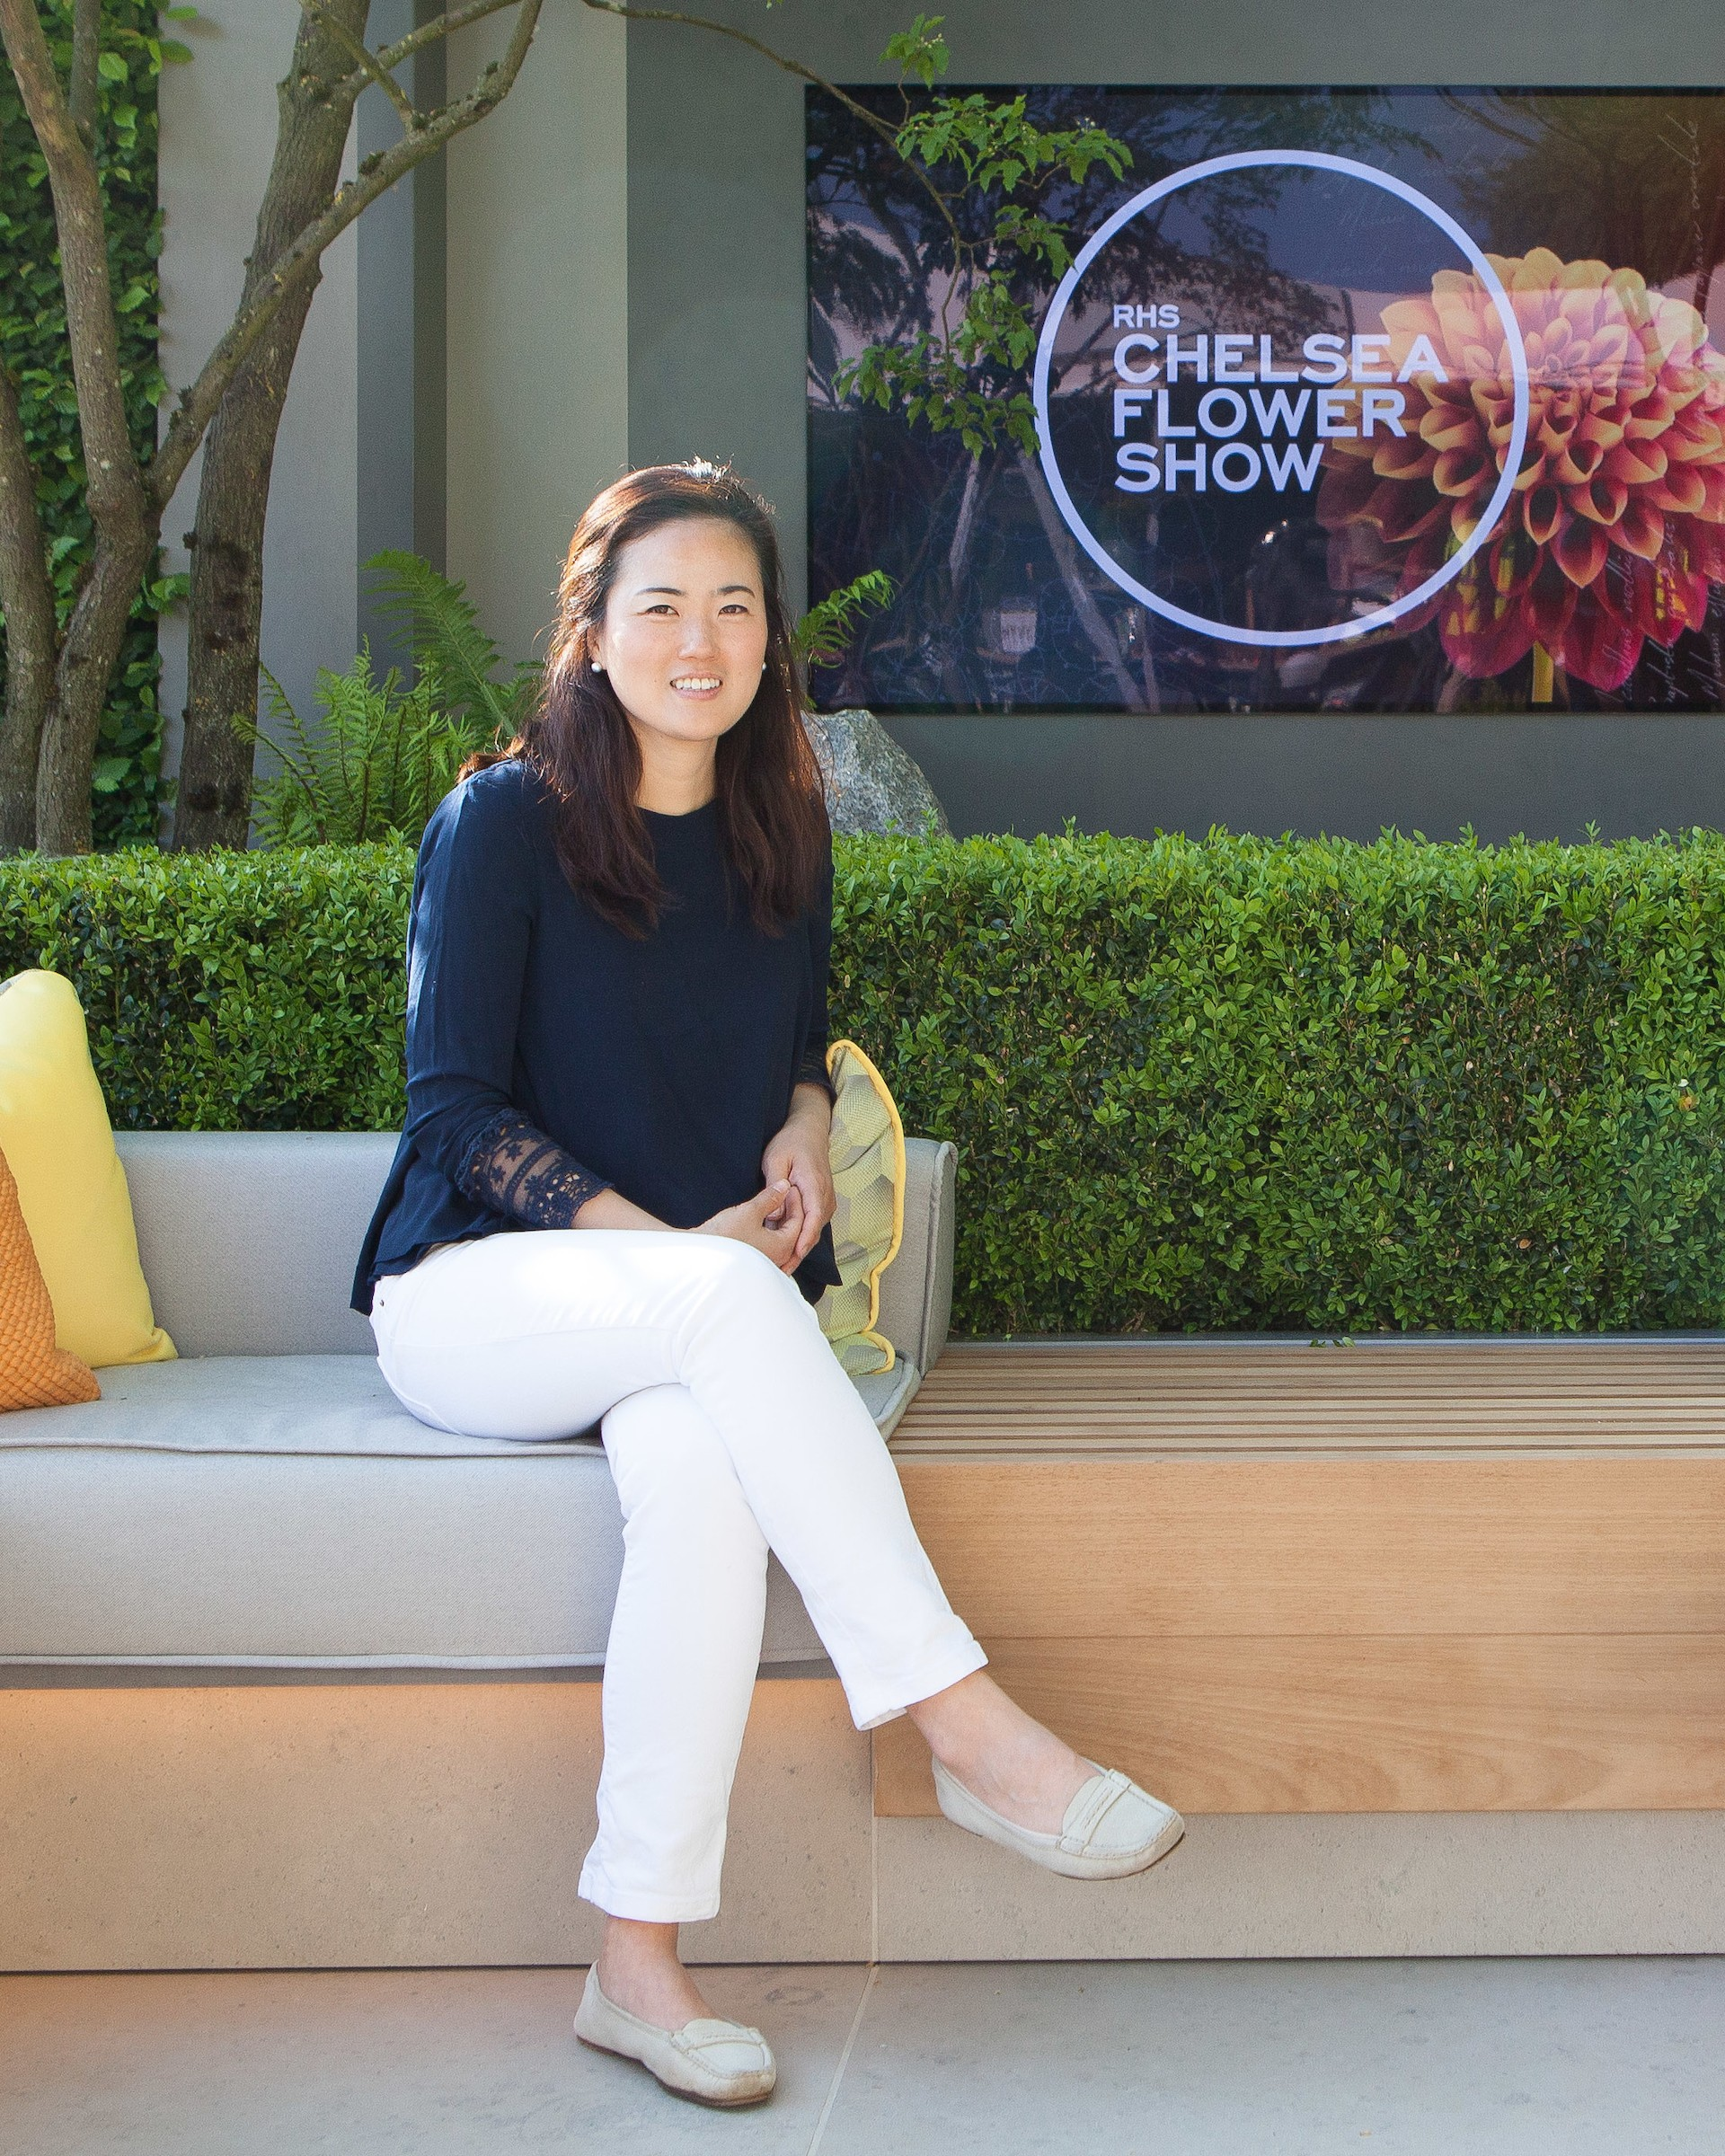 Korean landscape architect Hwang Hay-joung sits on a couch in front of the RHS Chelsea Flower Show logo.